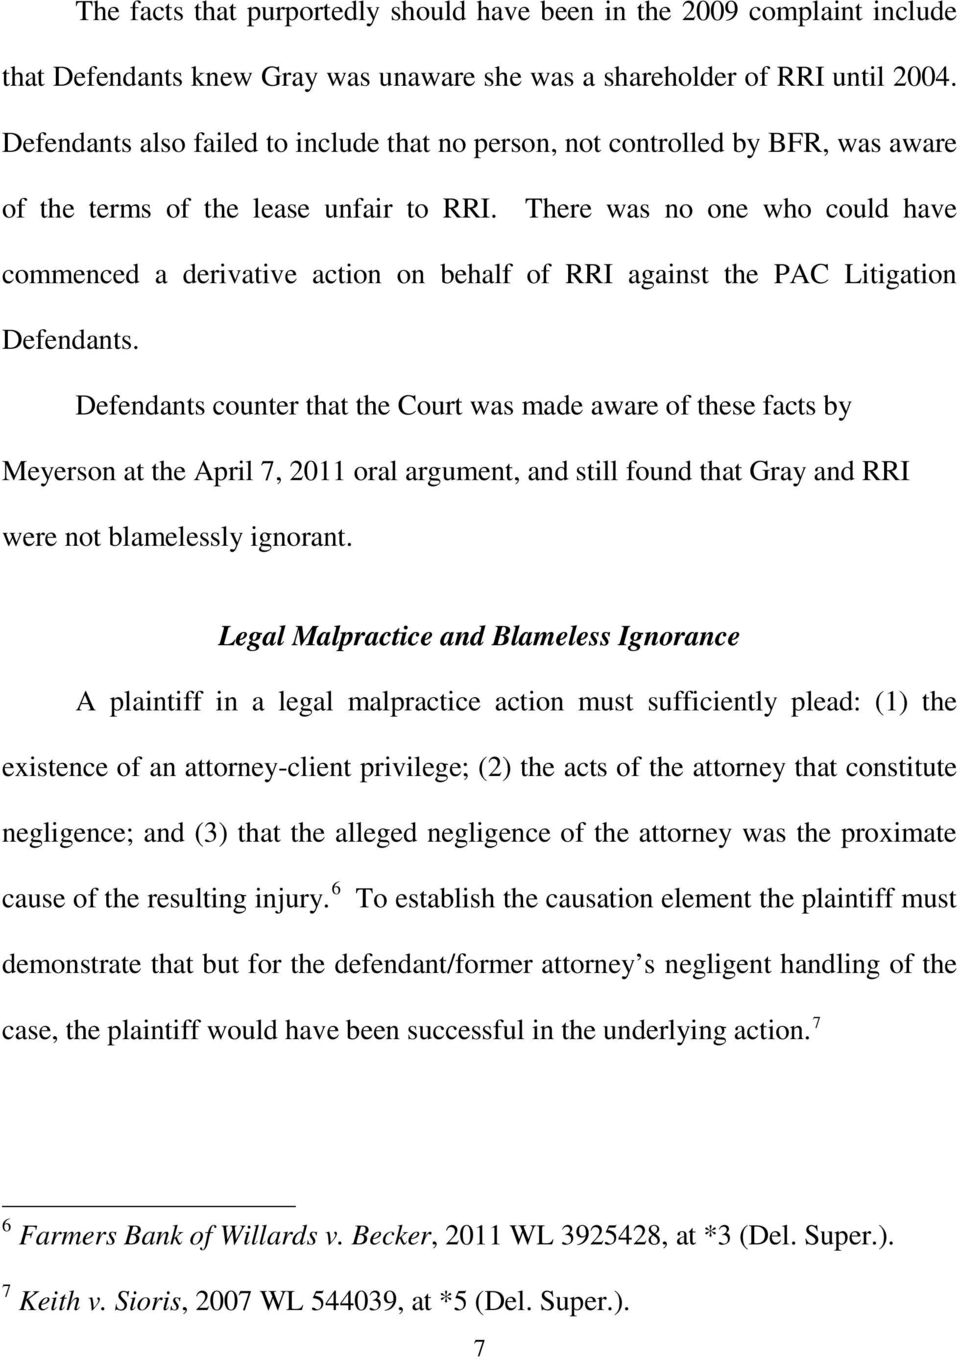 There was no one who could have commenced a derivative action on behalf of RRI against the PAC Litigation Defendants.